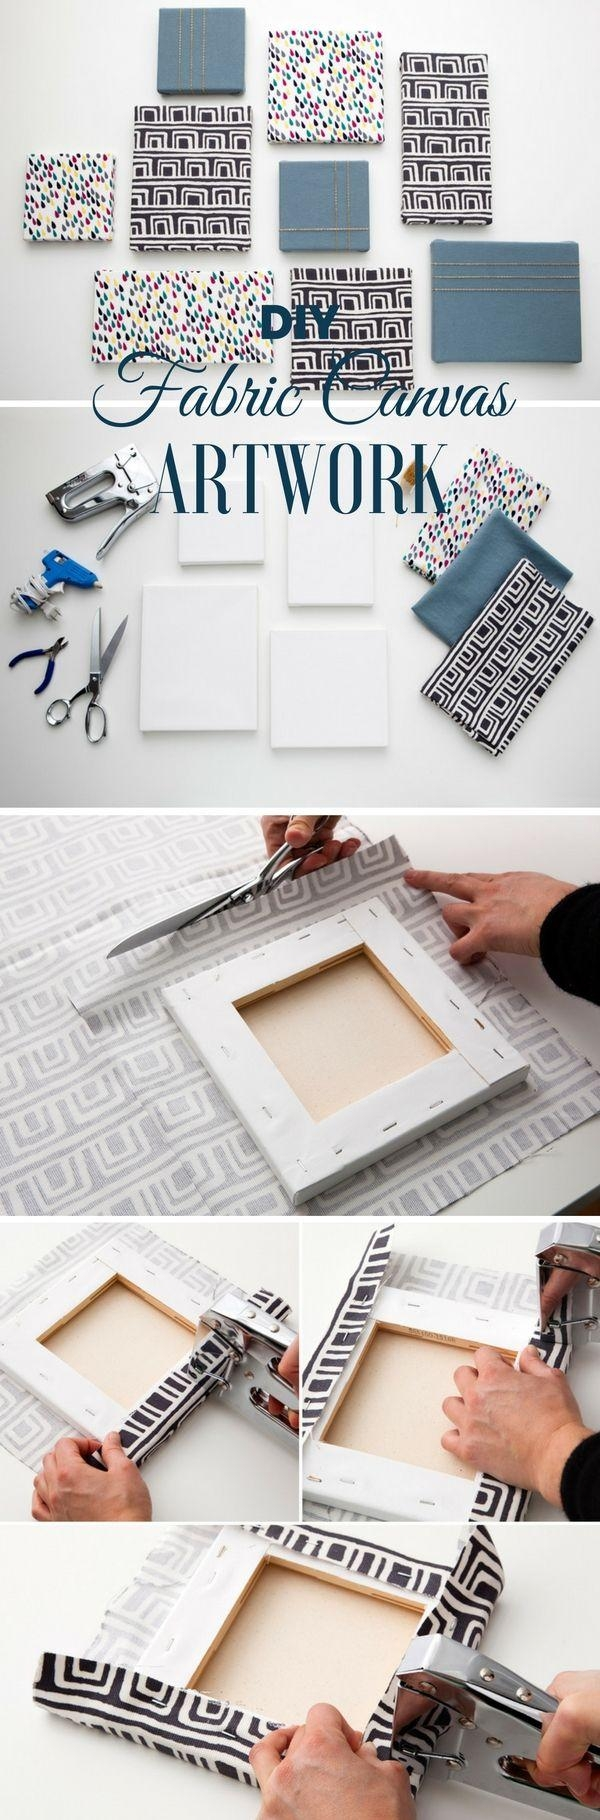 Best 10+ Diy Wall Art Ideas On Pinterest | Diy Art, Diy Wall Decor Intended For Pinterest Diy Wall Art (View 2 of 20)